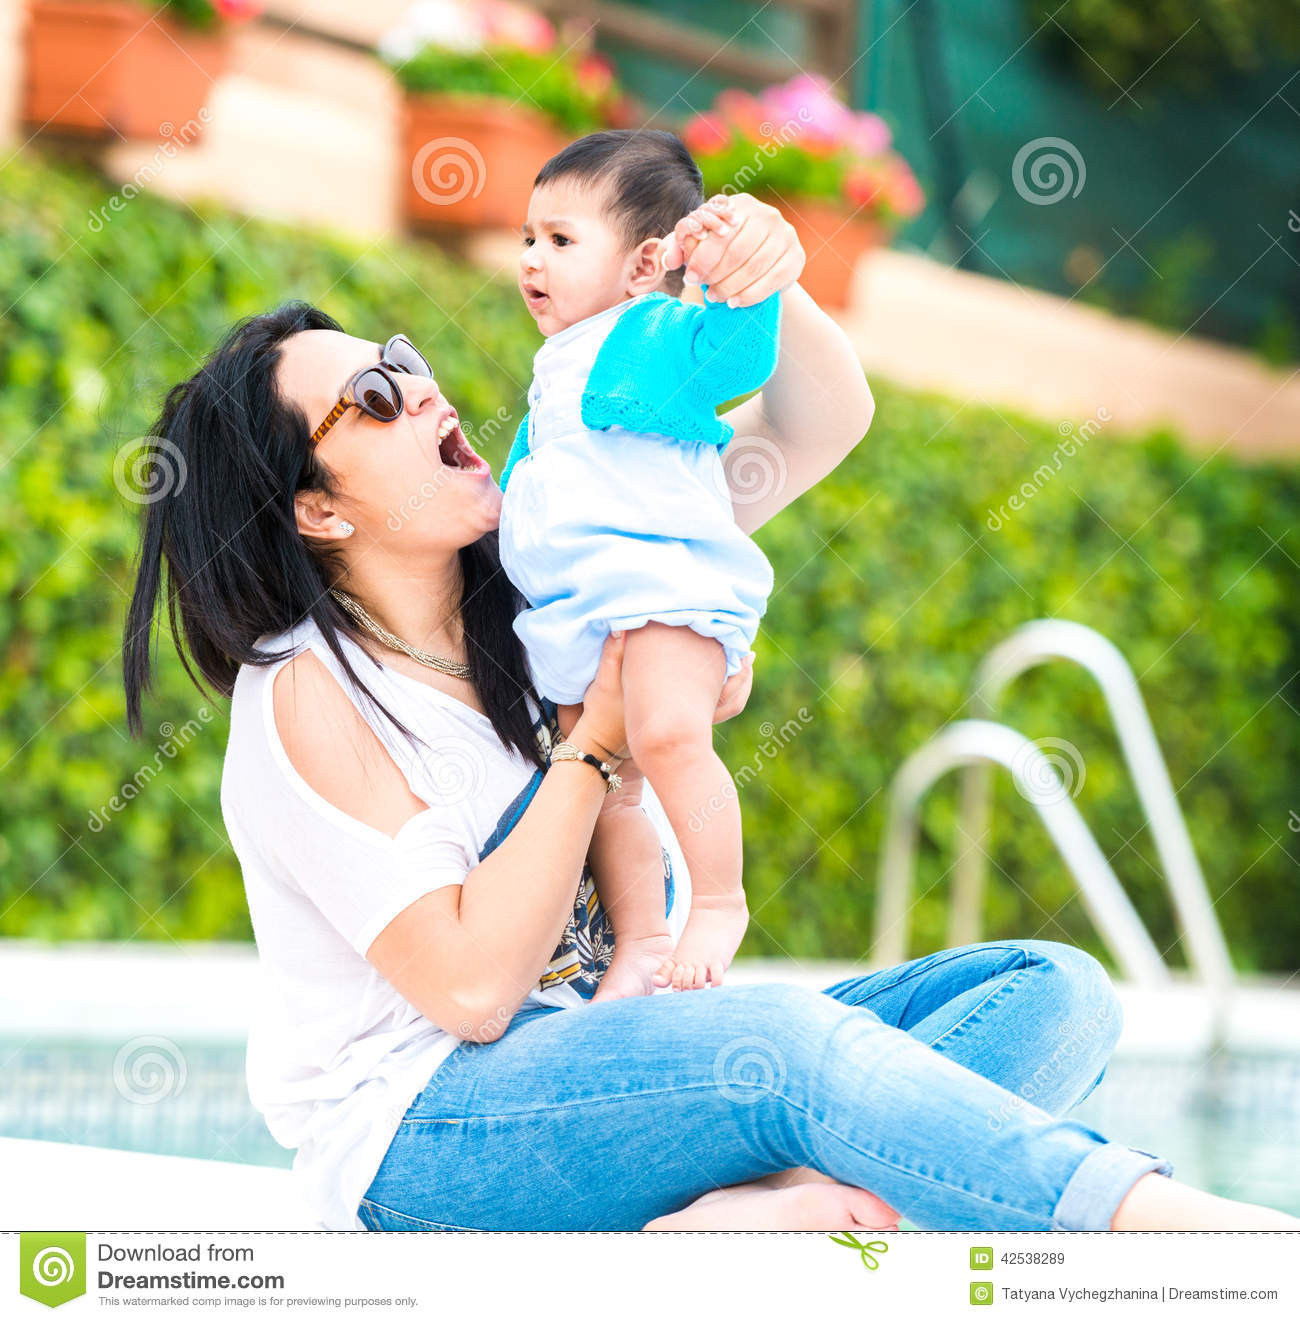 Young Mother With Her Baby Near The Swimming Pool Stock Photo Image 42538289